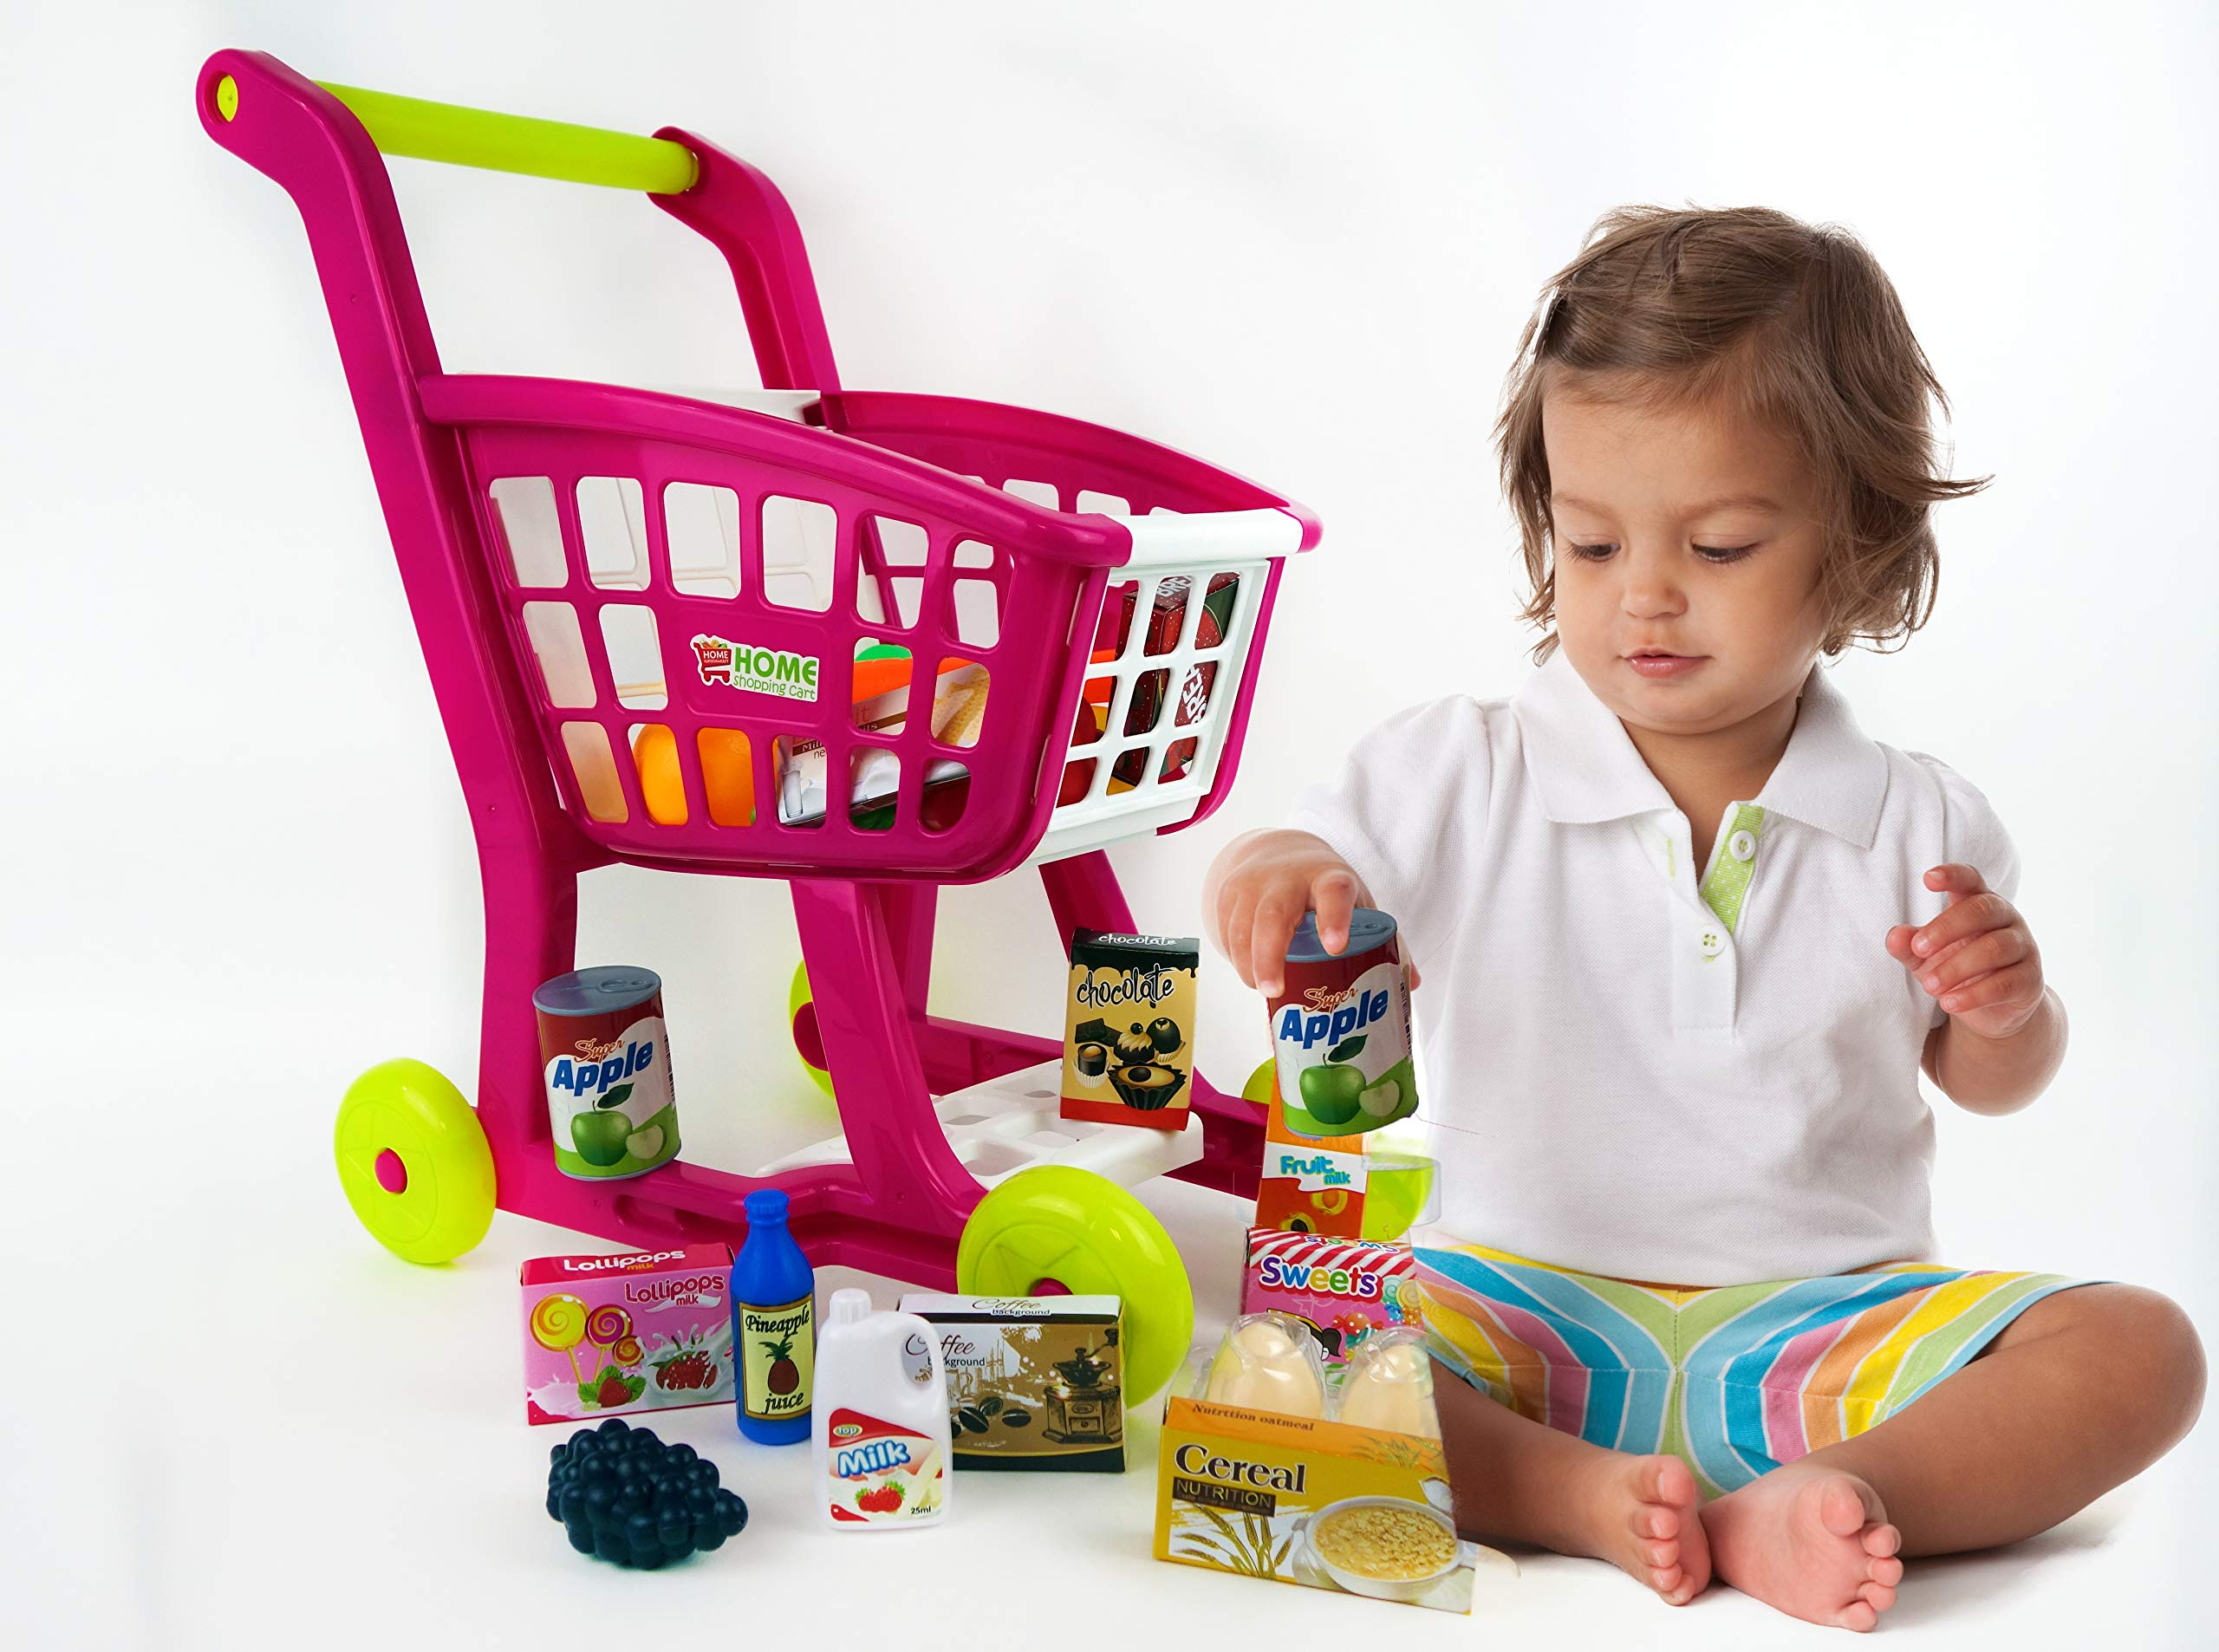 NBD Corp Kids Shopping Cart for Toy Groceries, Pink Portable Cart with 27 Pieces of Fruits, Vegetables, Food, Pretend Play Toy Grocery Cart by NBD Corp